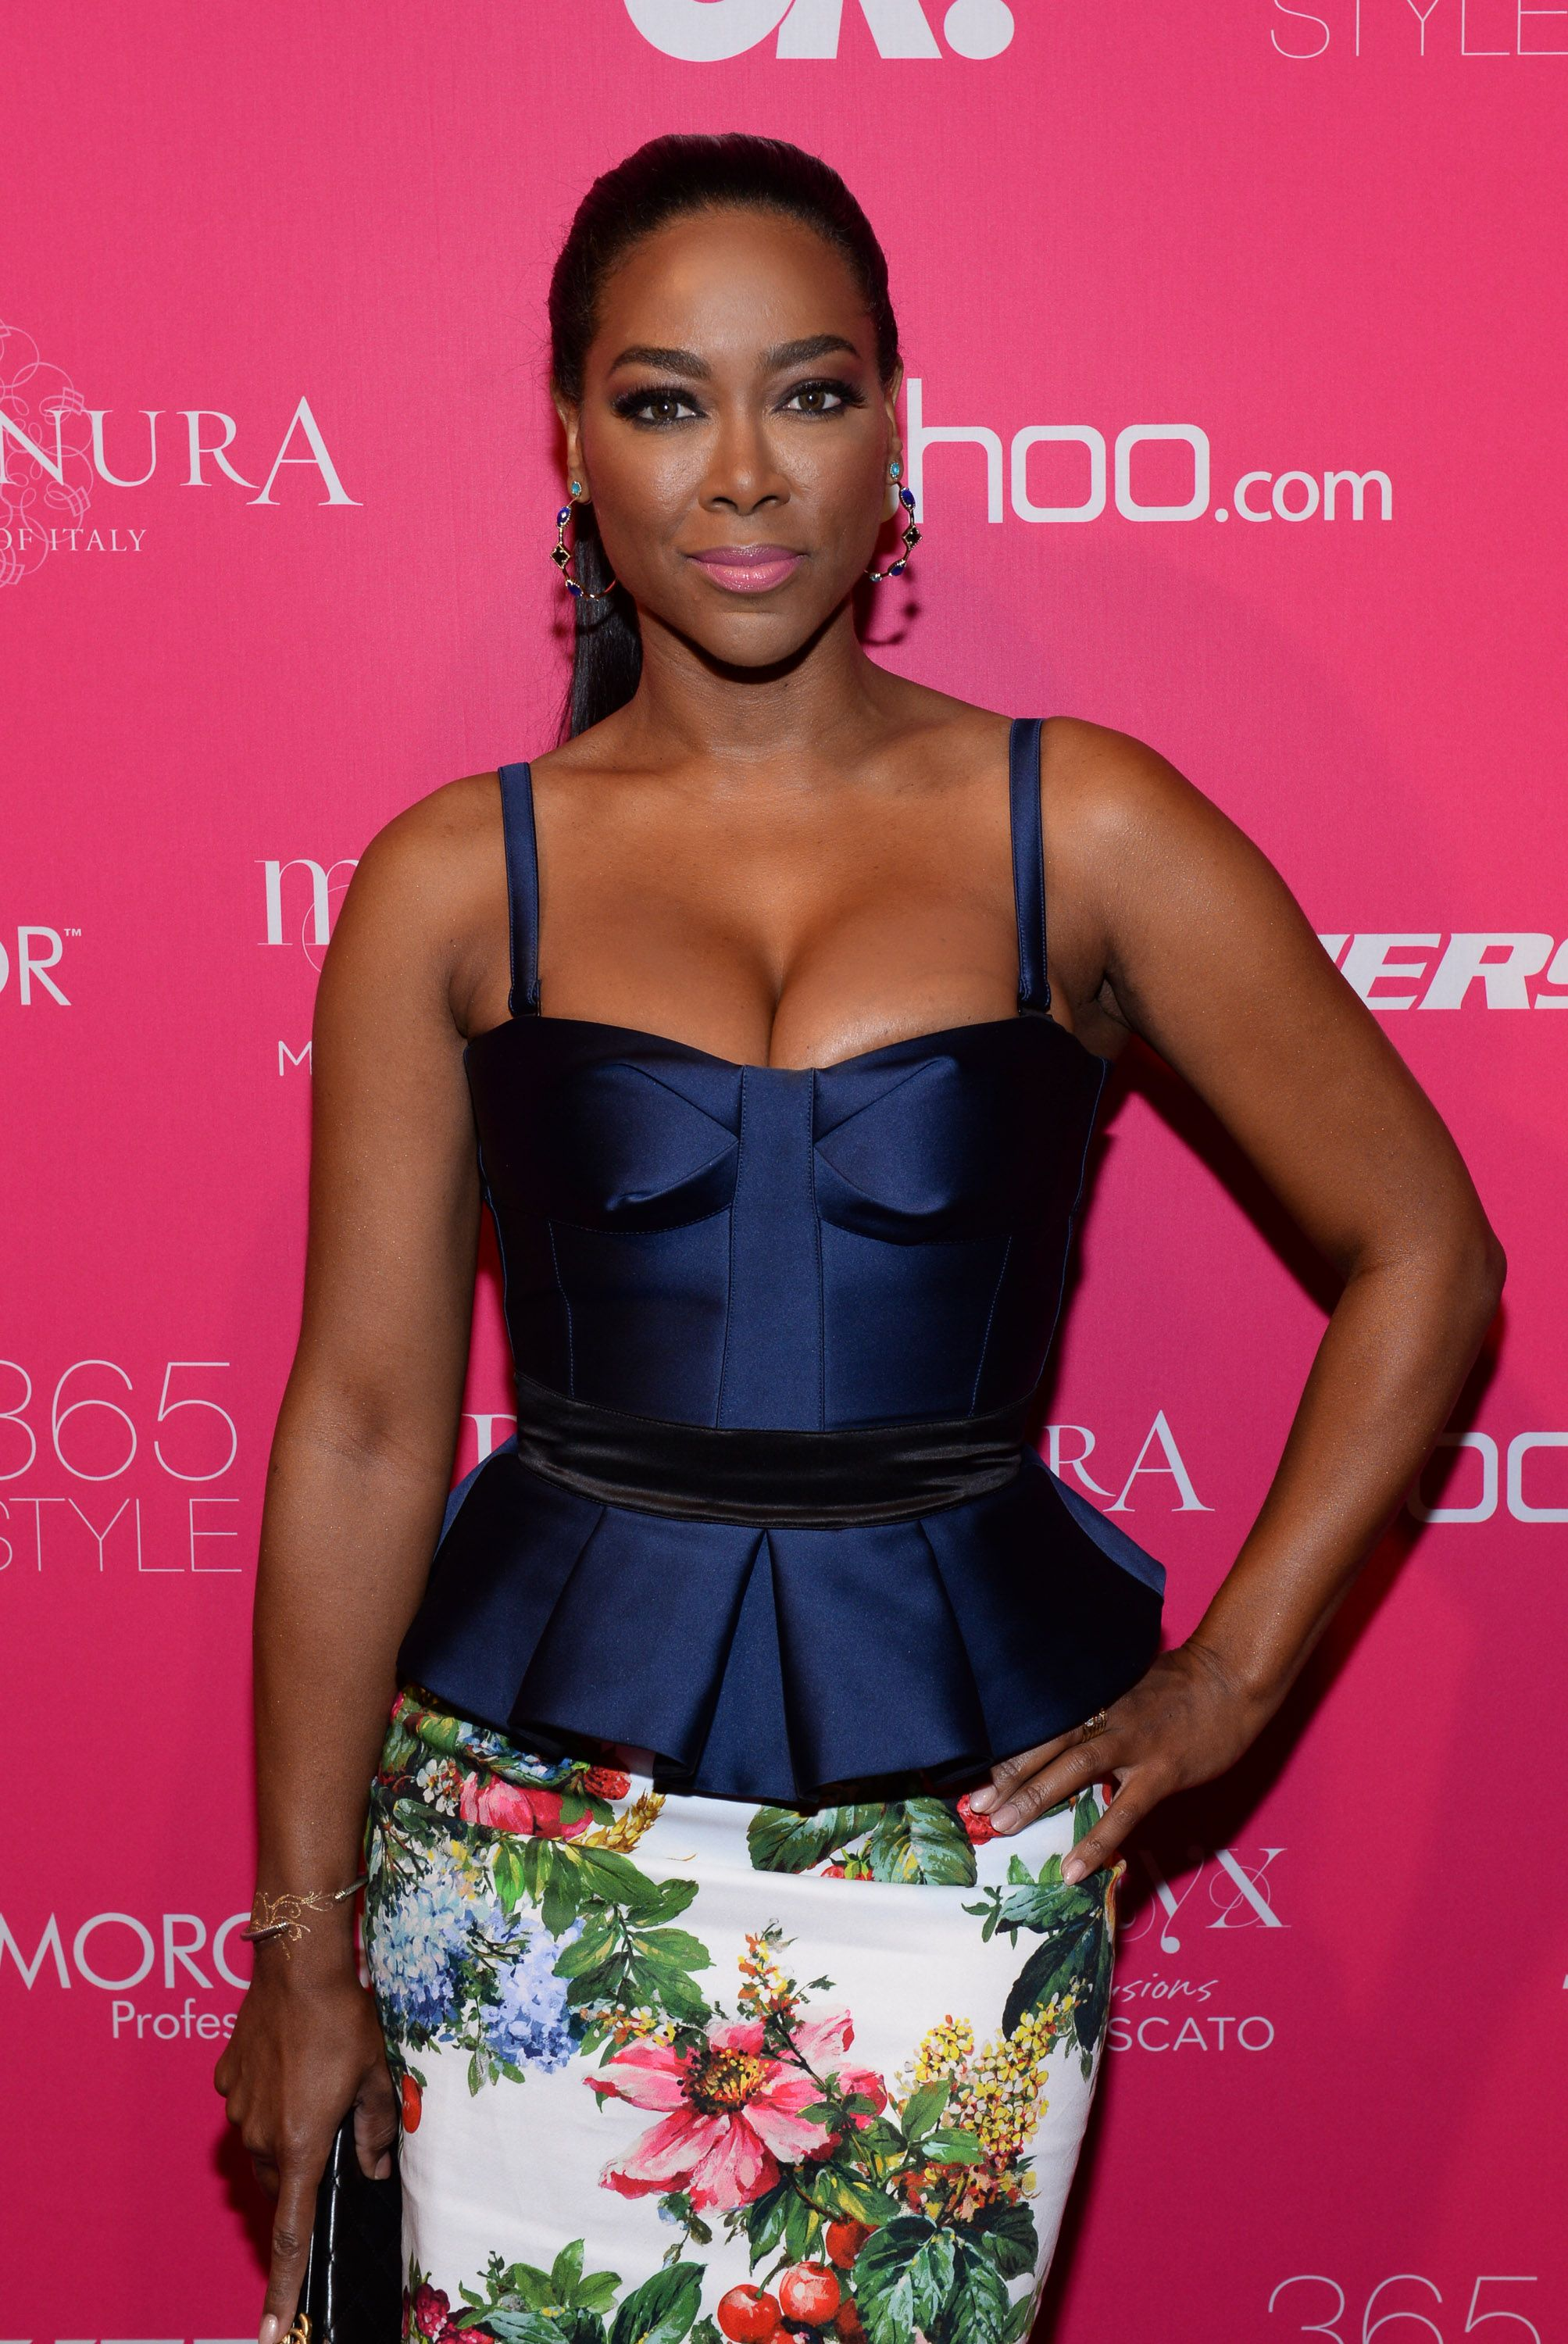 Kenya Moore at the OK! Fashion Week Event 2014 on September 10, 2014 in New York City. | Source: Getty Images